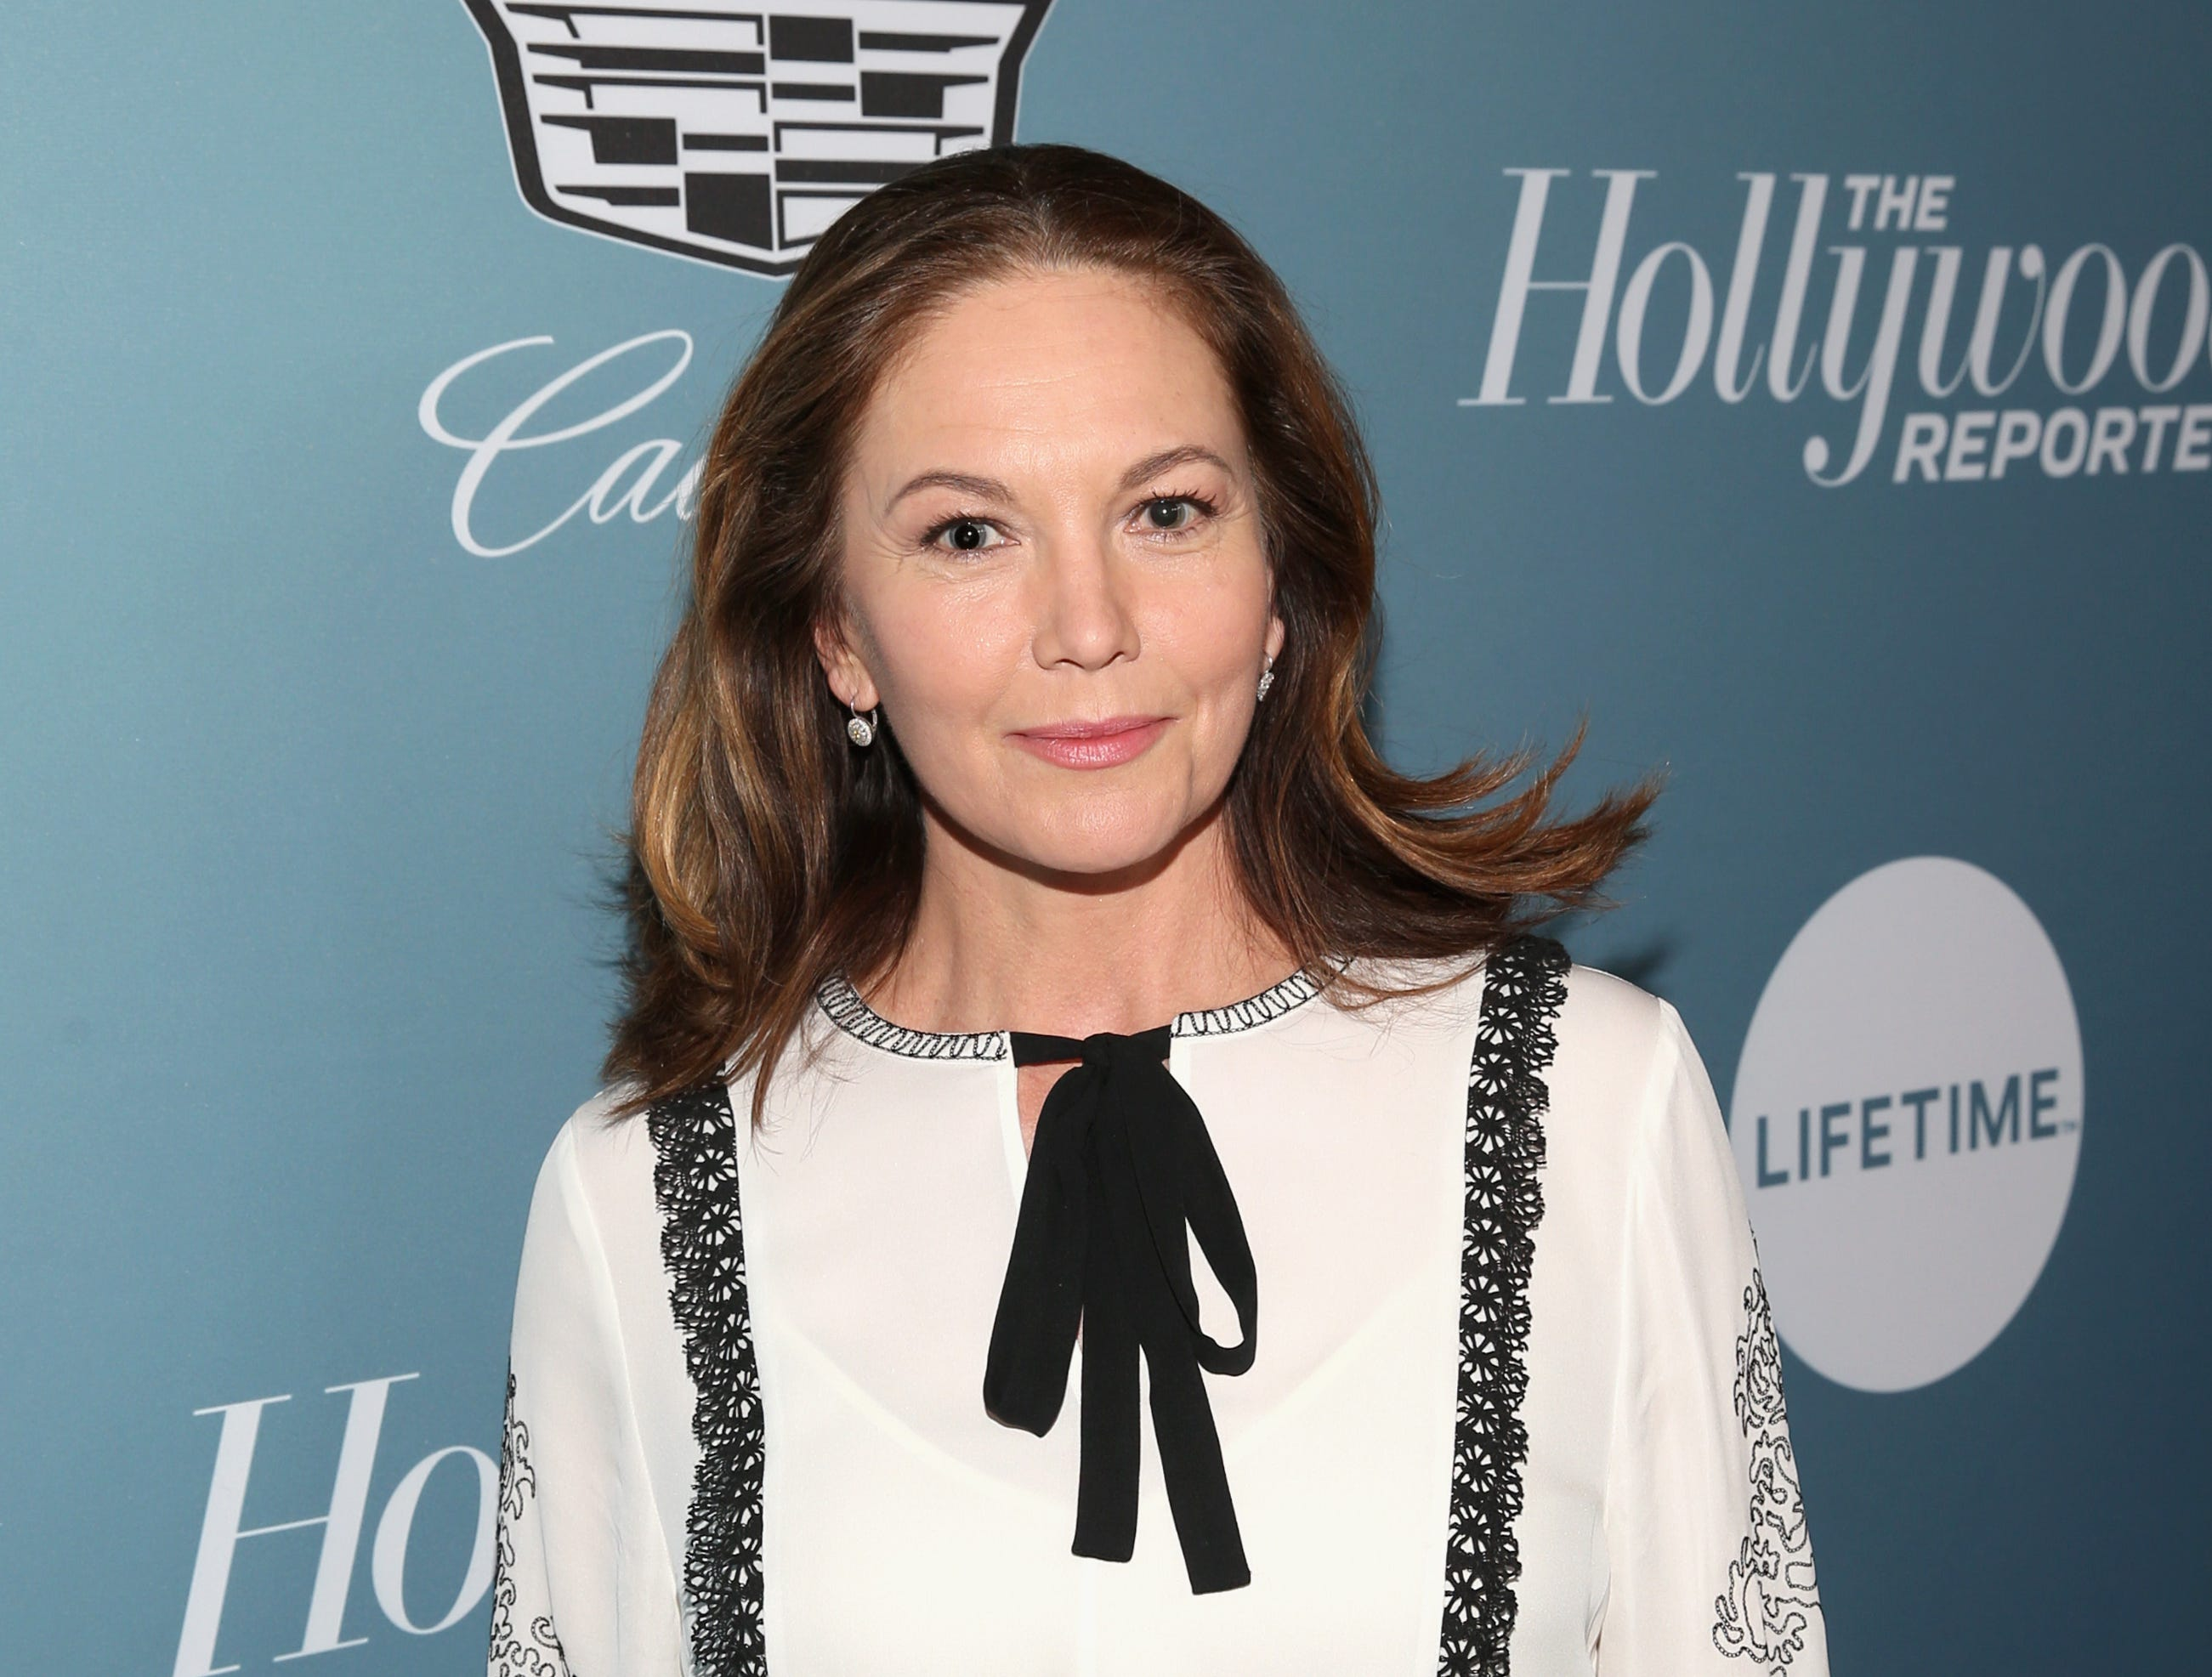 LOS ANGELES, CA - DECEMBER 05:  Diane Lane attends The Hollywood Reporter's Power 100 Women In Entertainment at Milk Studios on December 5, 2018 in Los Angeles, California.  (Photo by Jesse Grant/Getty Images for The Hollywood Reporter ) ORG XMIT: 775264611 ORIG FILE ID: 1068729230